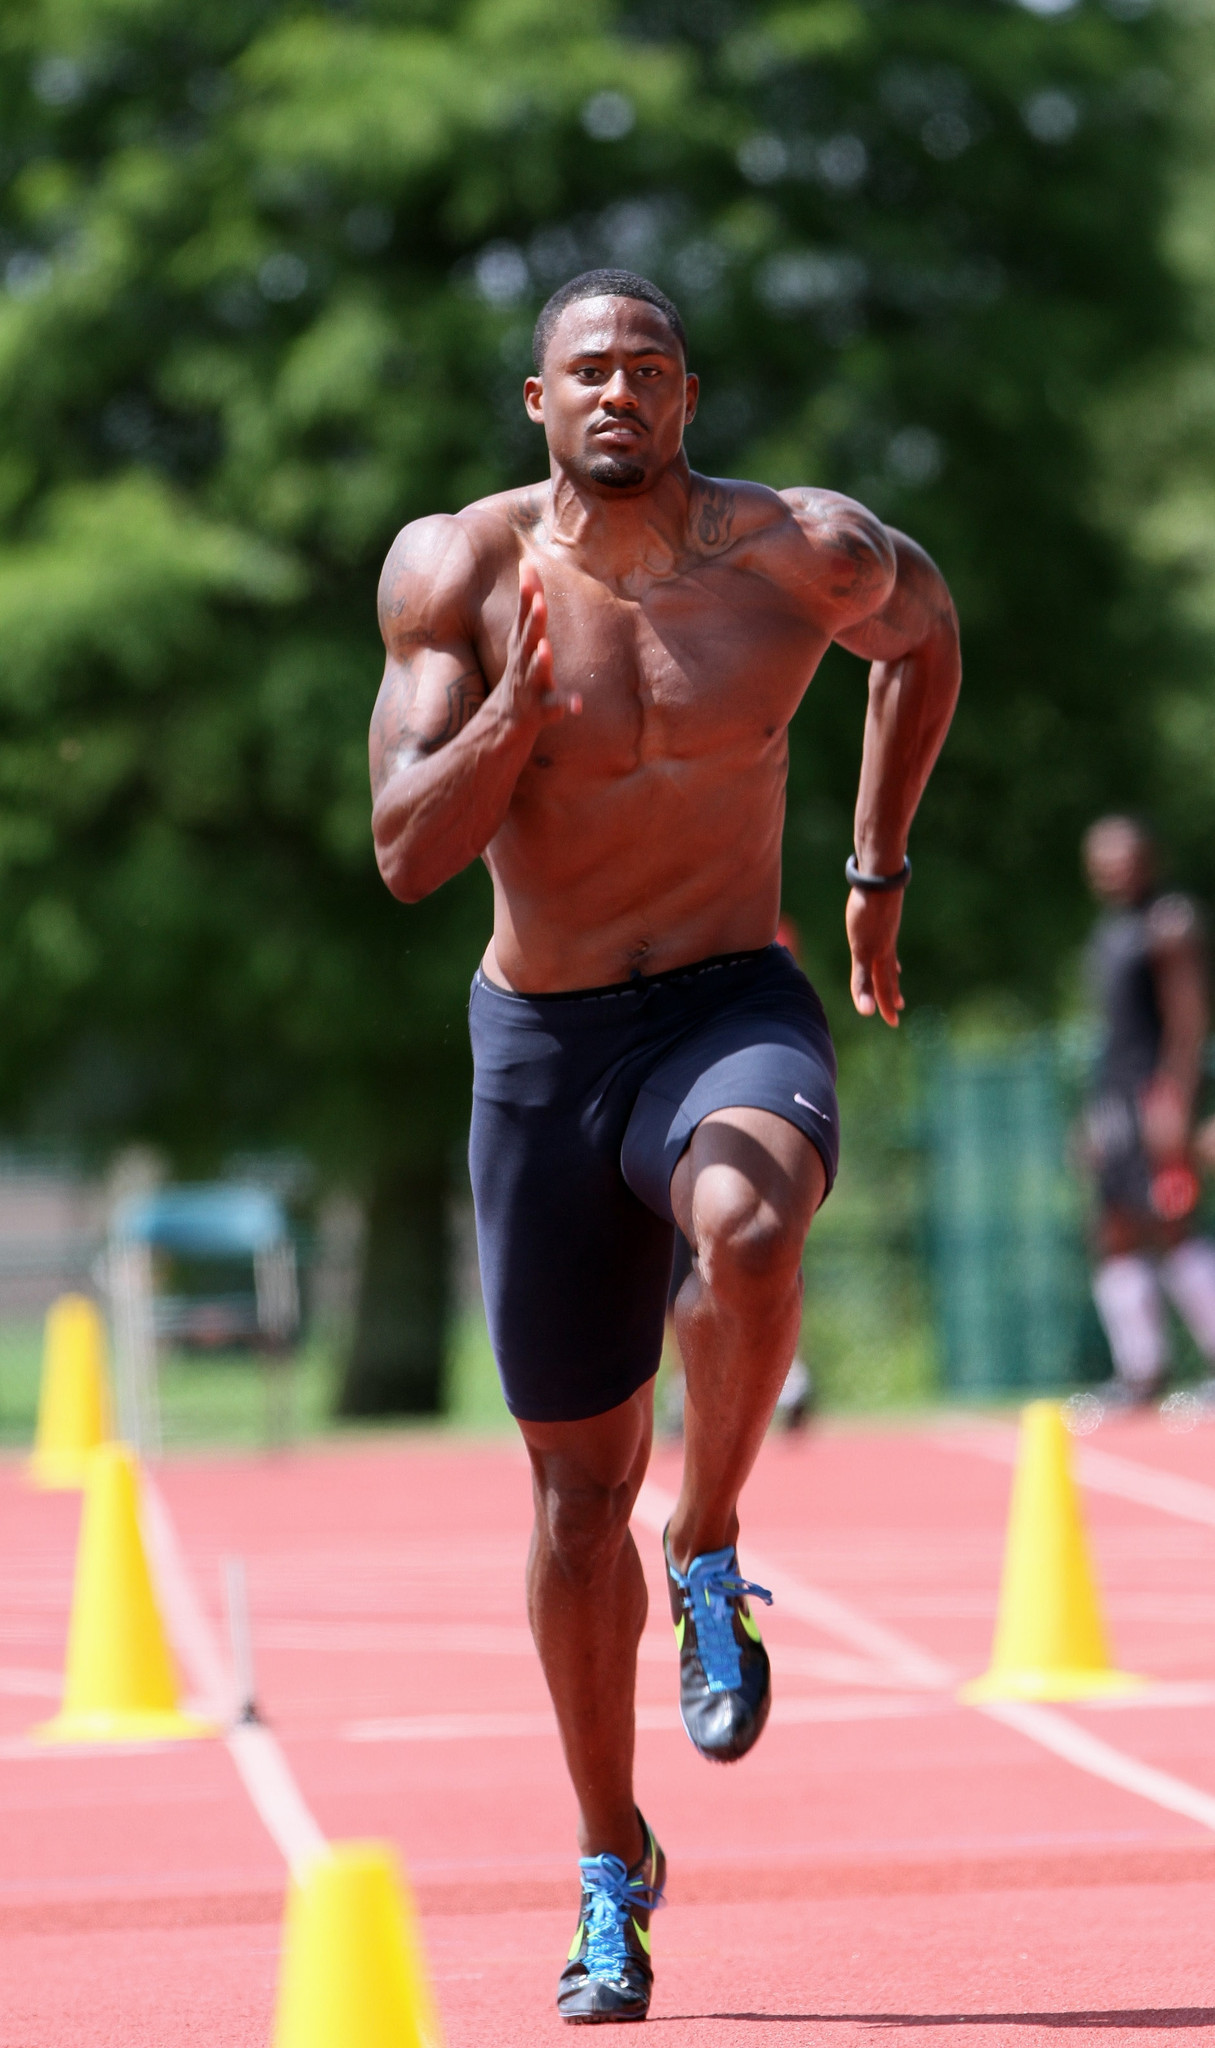 Olympic 110-meter hurdles bronze medalist David Oliver sprints while training with coach Brooks Johnson at ESPN Wide World of Sports at Walt Disney World, on Monday, June 11, 2012.